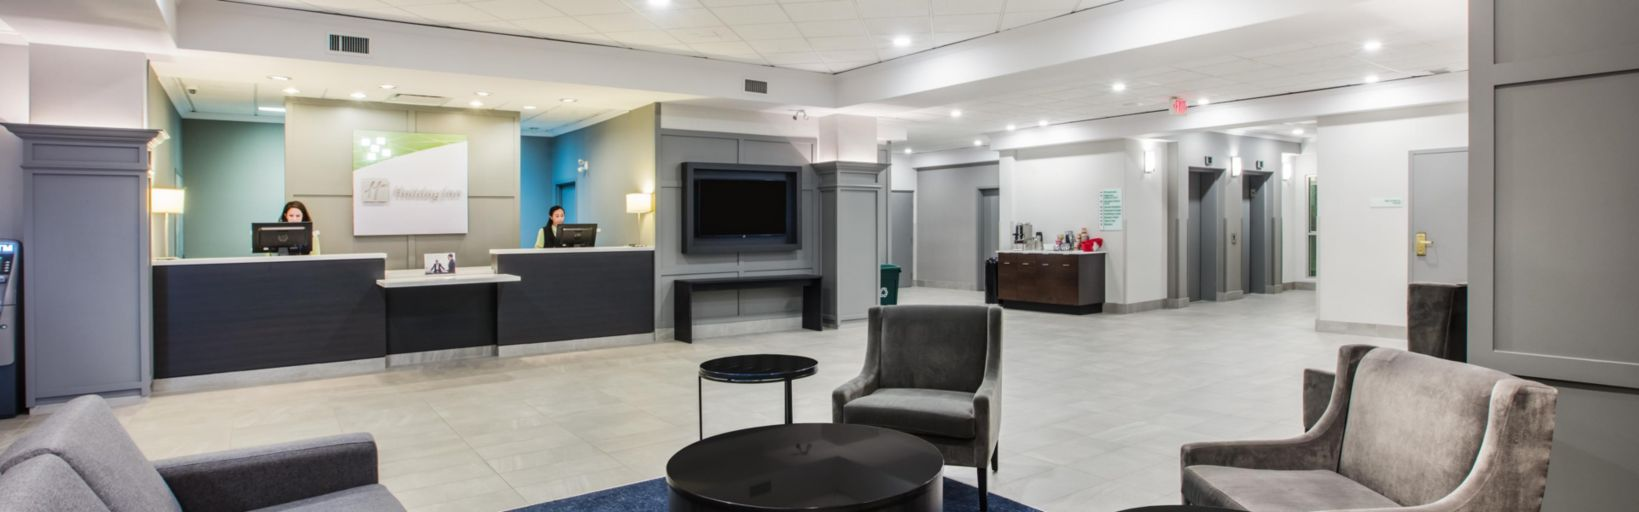 Holiday Inn Hotel Suites Grande Prairie Conference Ctr Hotel By Ihg